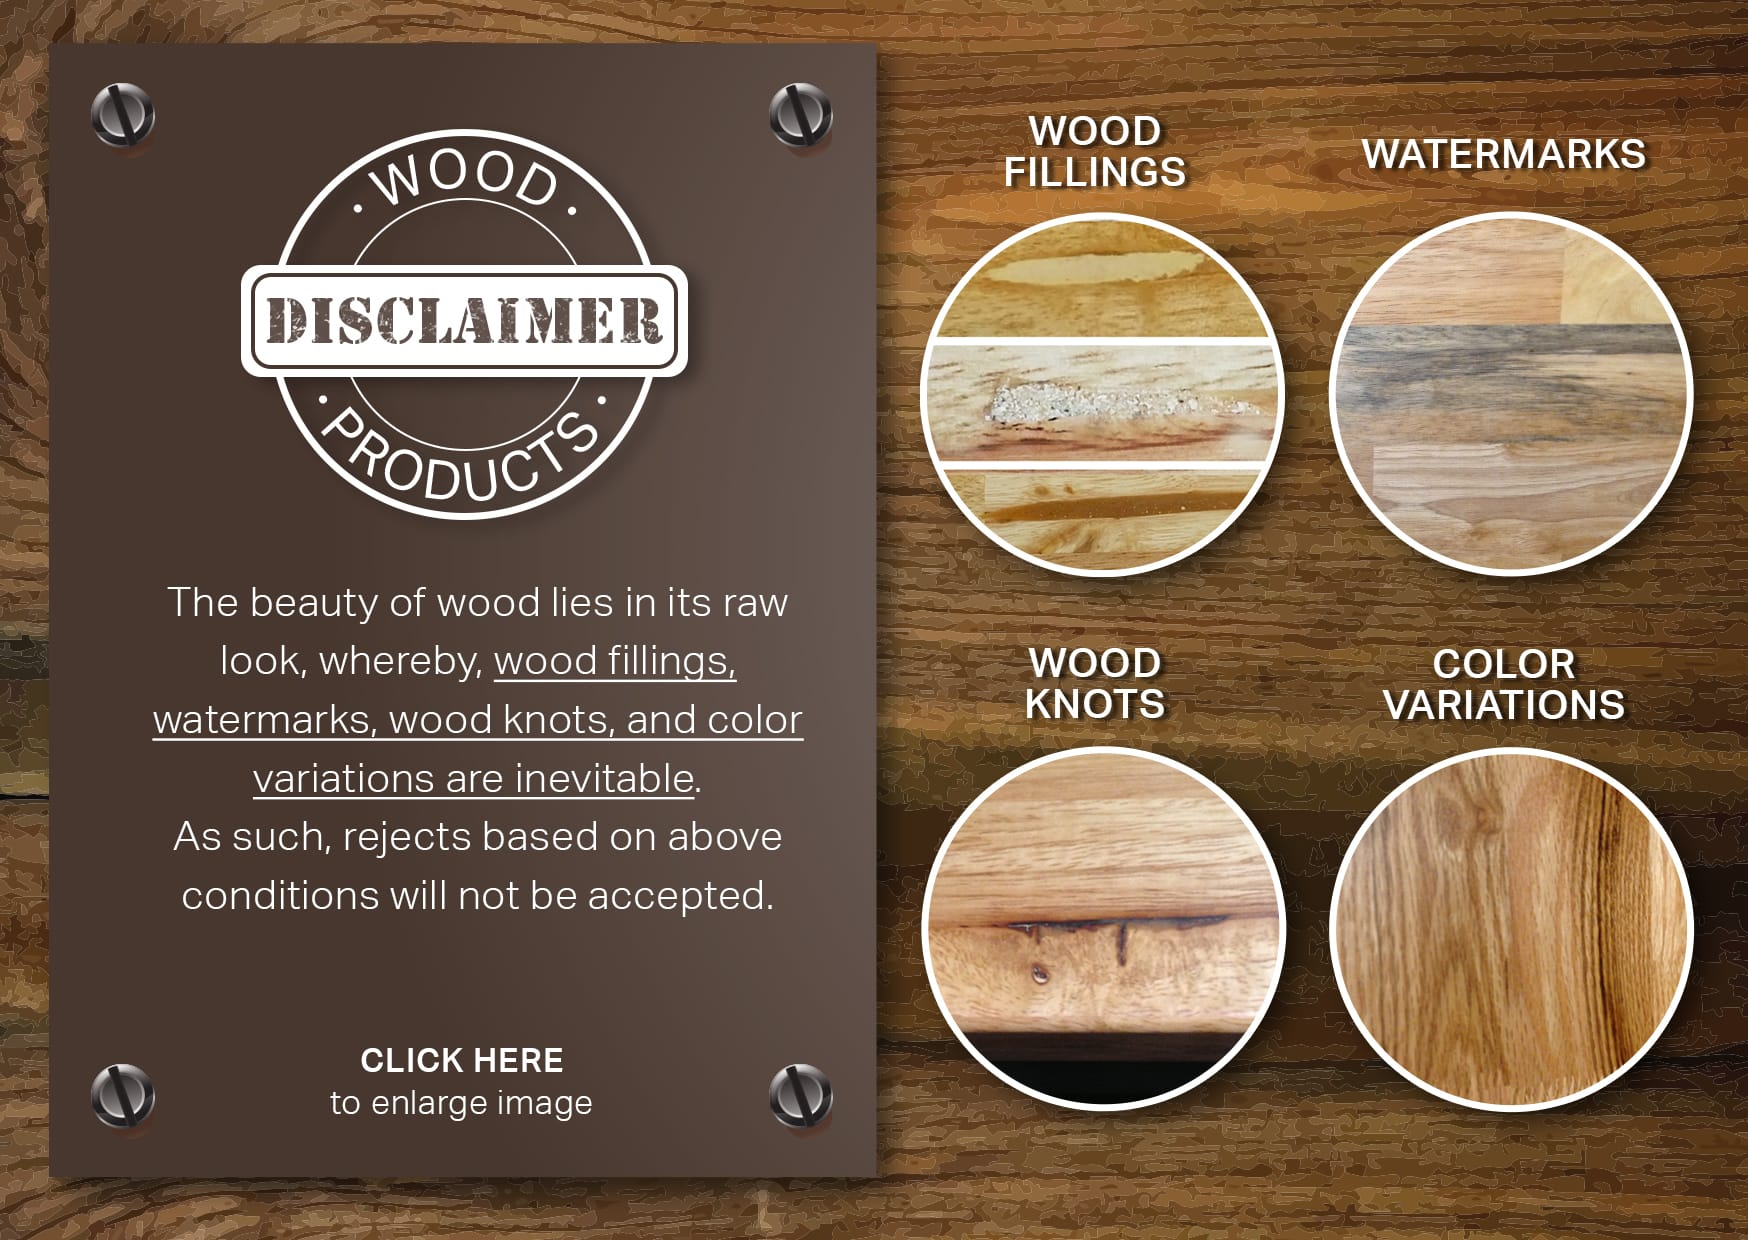 The beauty of the wood lies in its raw look, whereby Wood Fillings, Watermarks, Wood Knots, and Colour Variations are inevitable. As such, rejects based on above conditions will not be accepted.